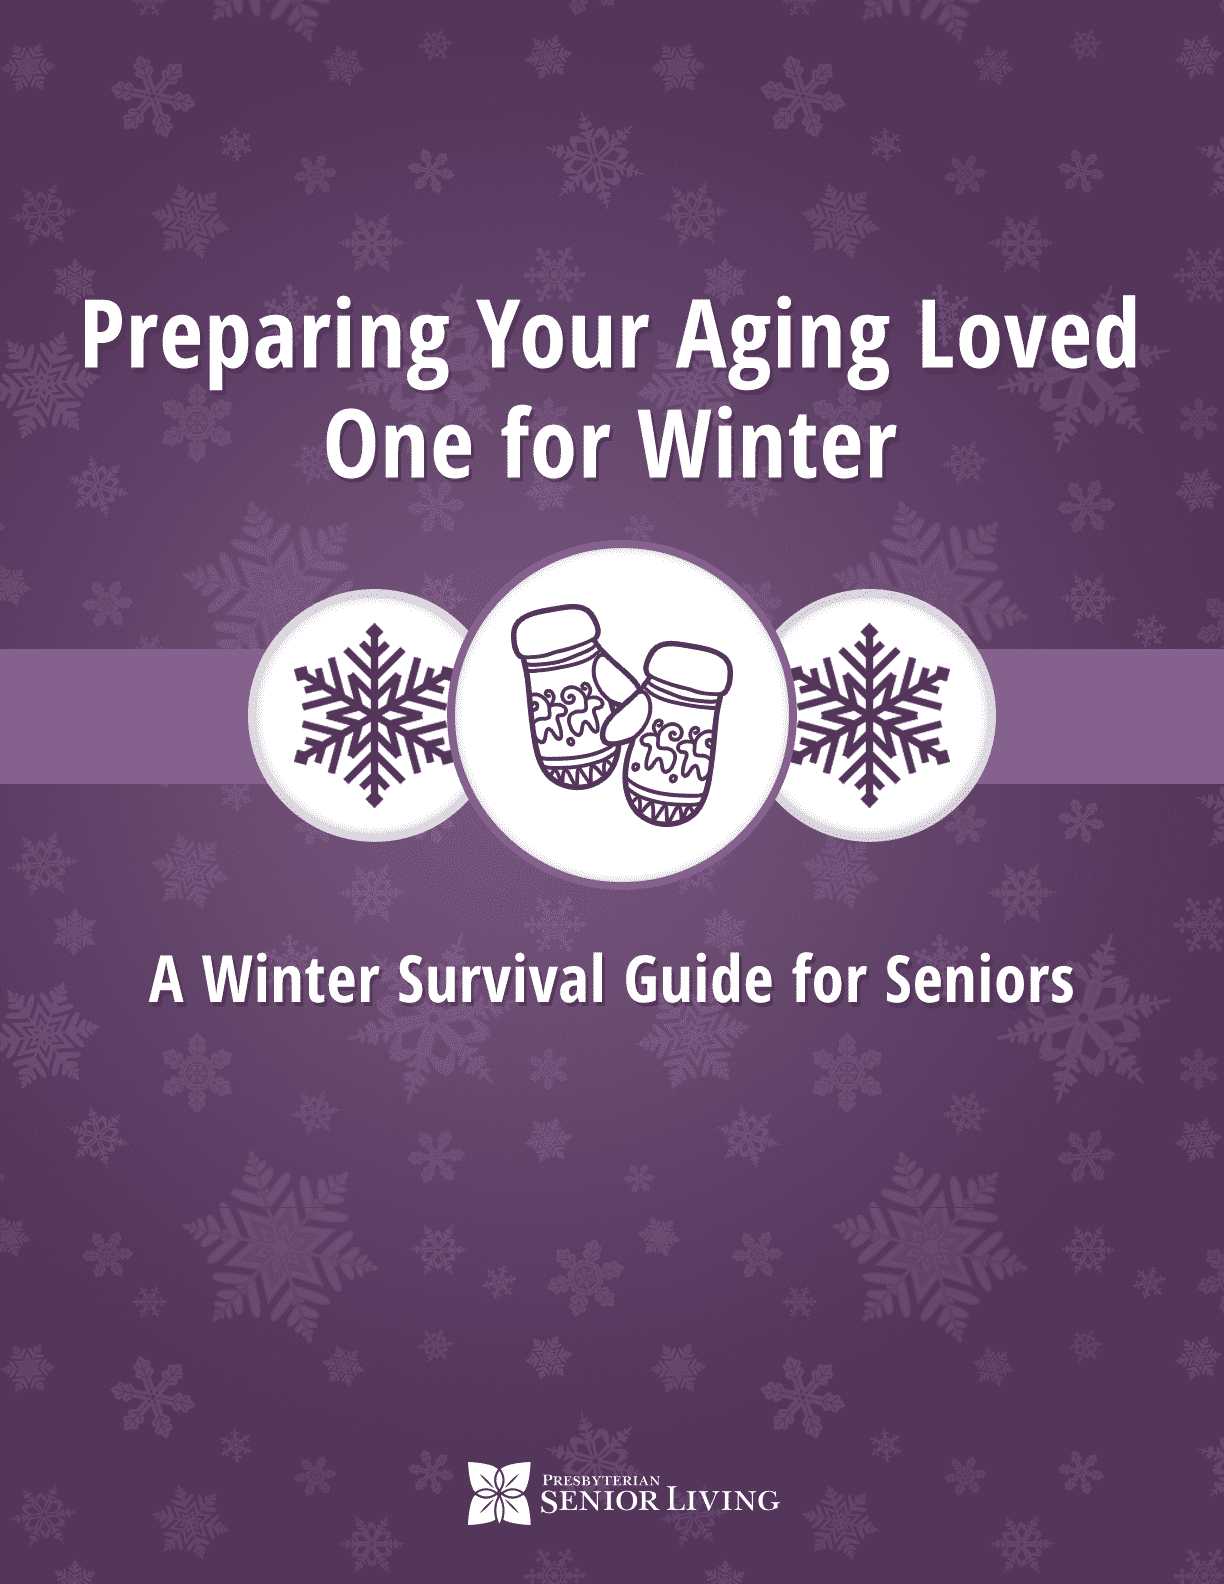 Preparing Your Aging Loved One for Winter